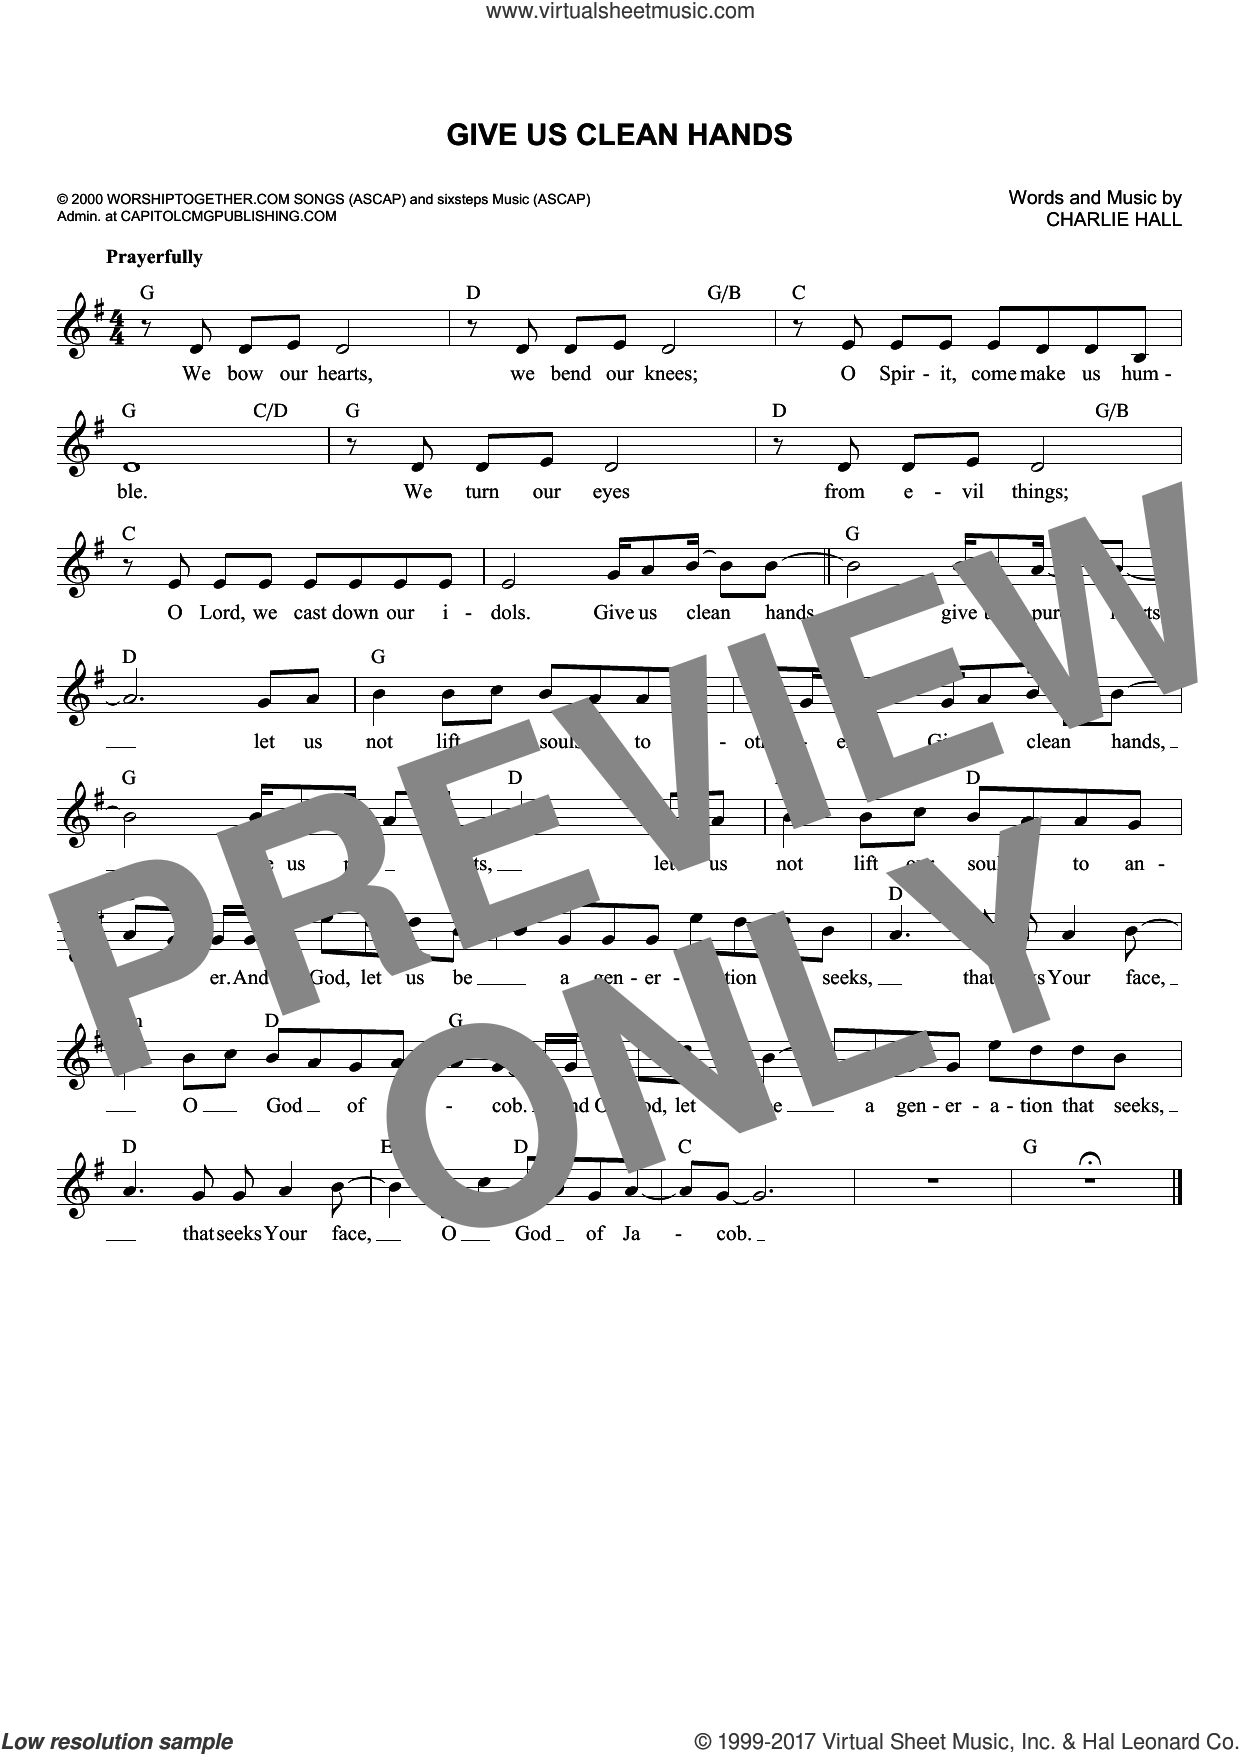 Give Us Clean Hands sheet music for voice and other instruments (fake book) by Charlie Hall, Chris Tomlin and Passion, intermediate. Score Image Preview.